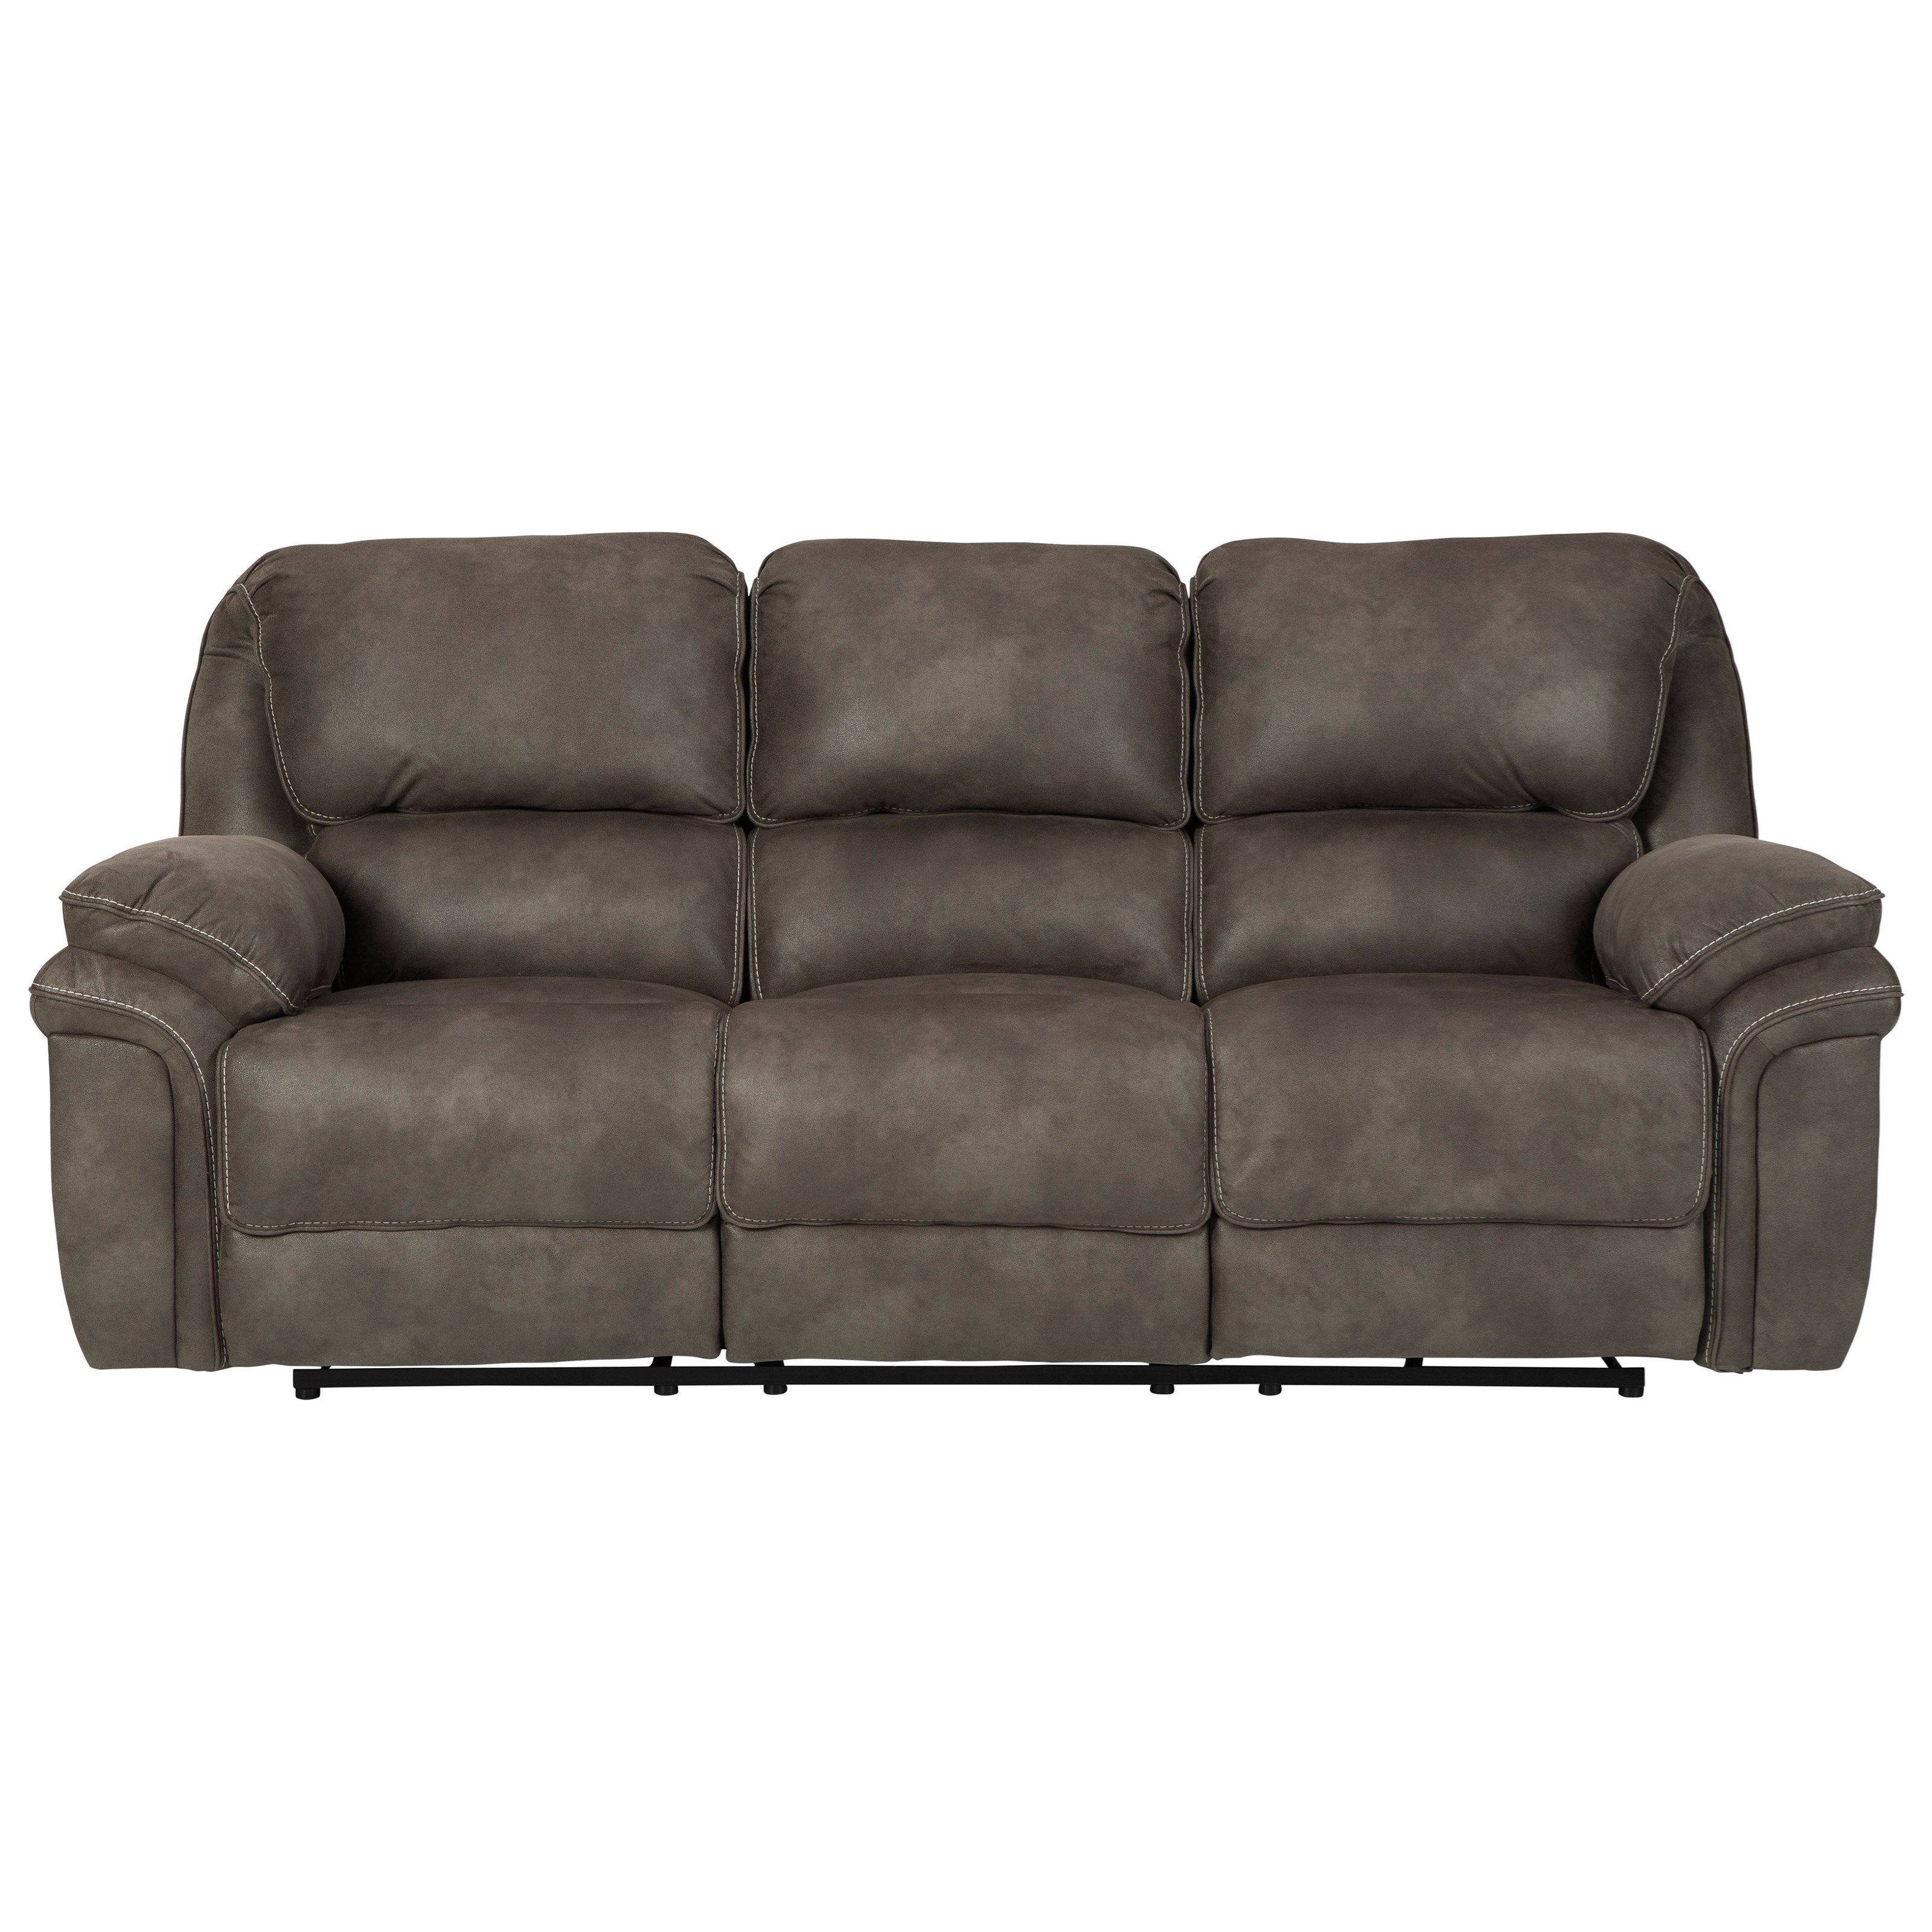 Trementon Reclining Power Sofa by Benchcraft at Value City Furniture